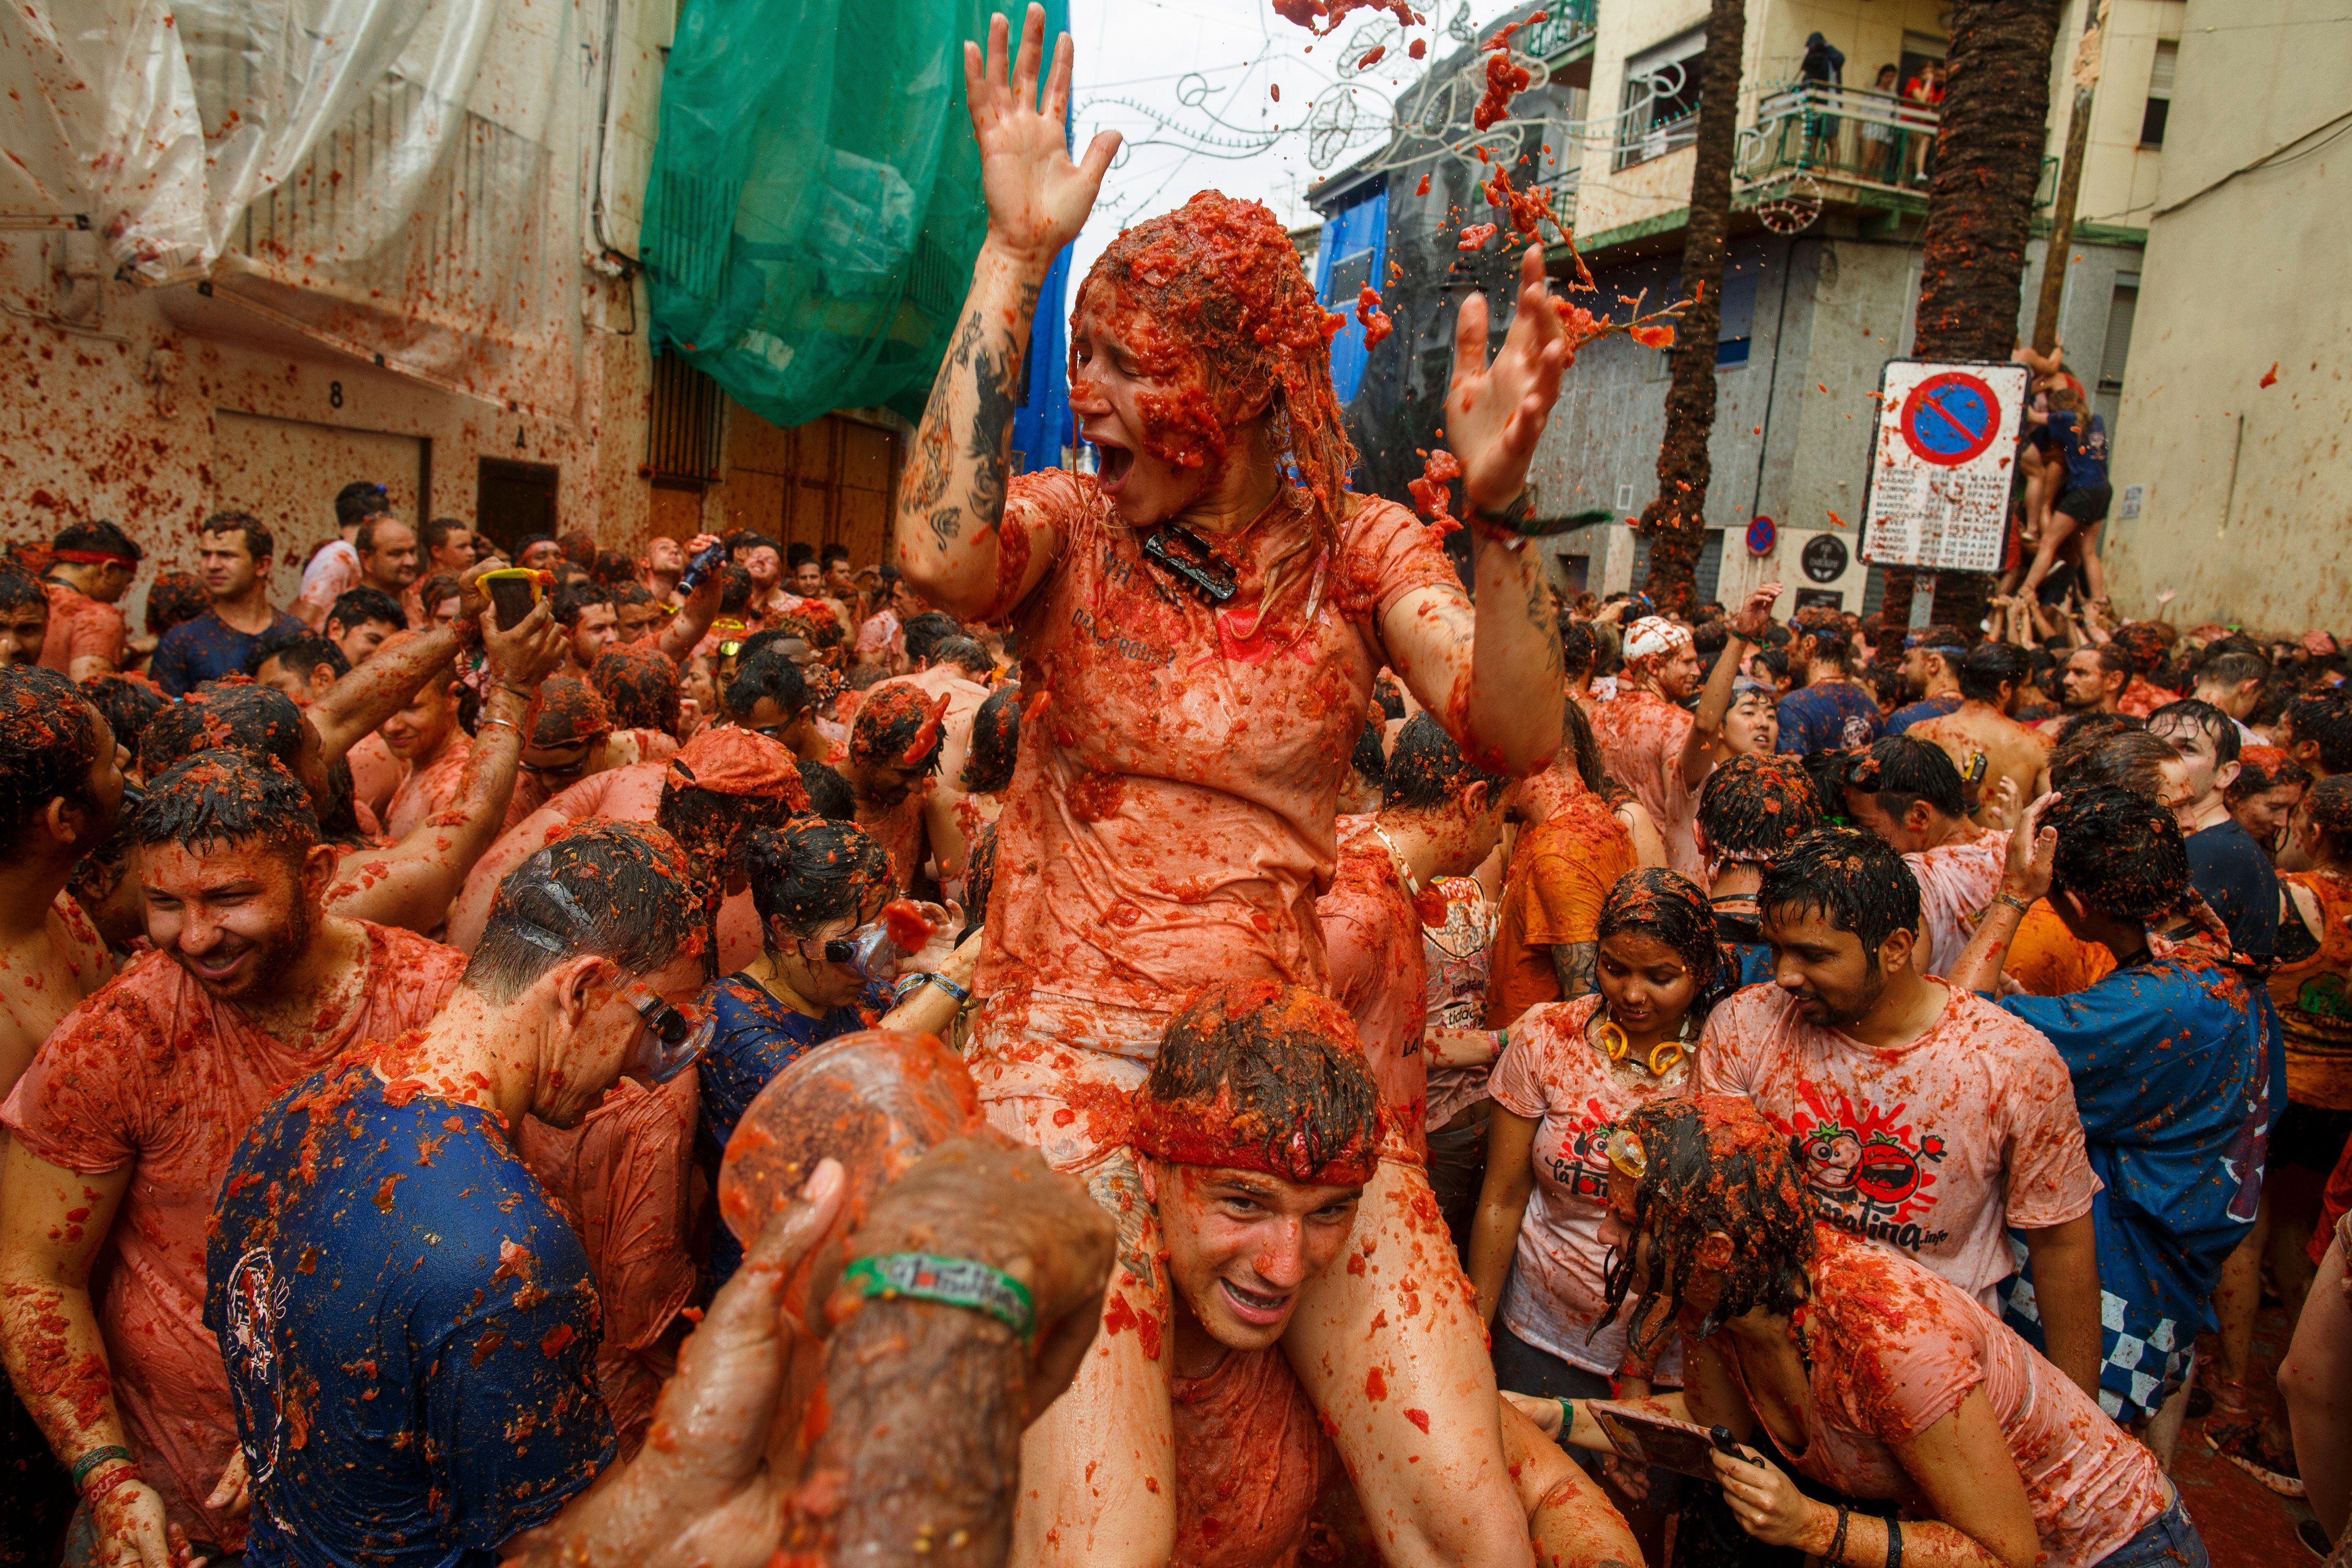 BUNOL, SPAIN - AUGUST 30:  Revellers enjoy the atmosphere in tomato pulp while participating the annual Tomatina festival on August 30, 2017 in Bunol, Spain. An estimated 22,000 people threw 150 tons of ripe tomatoes in the world's biggest tomato fight held annually in this Spanish Mediterranean town.  (Photo by Pablo Blazquez Dominguez/Getty Images)